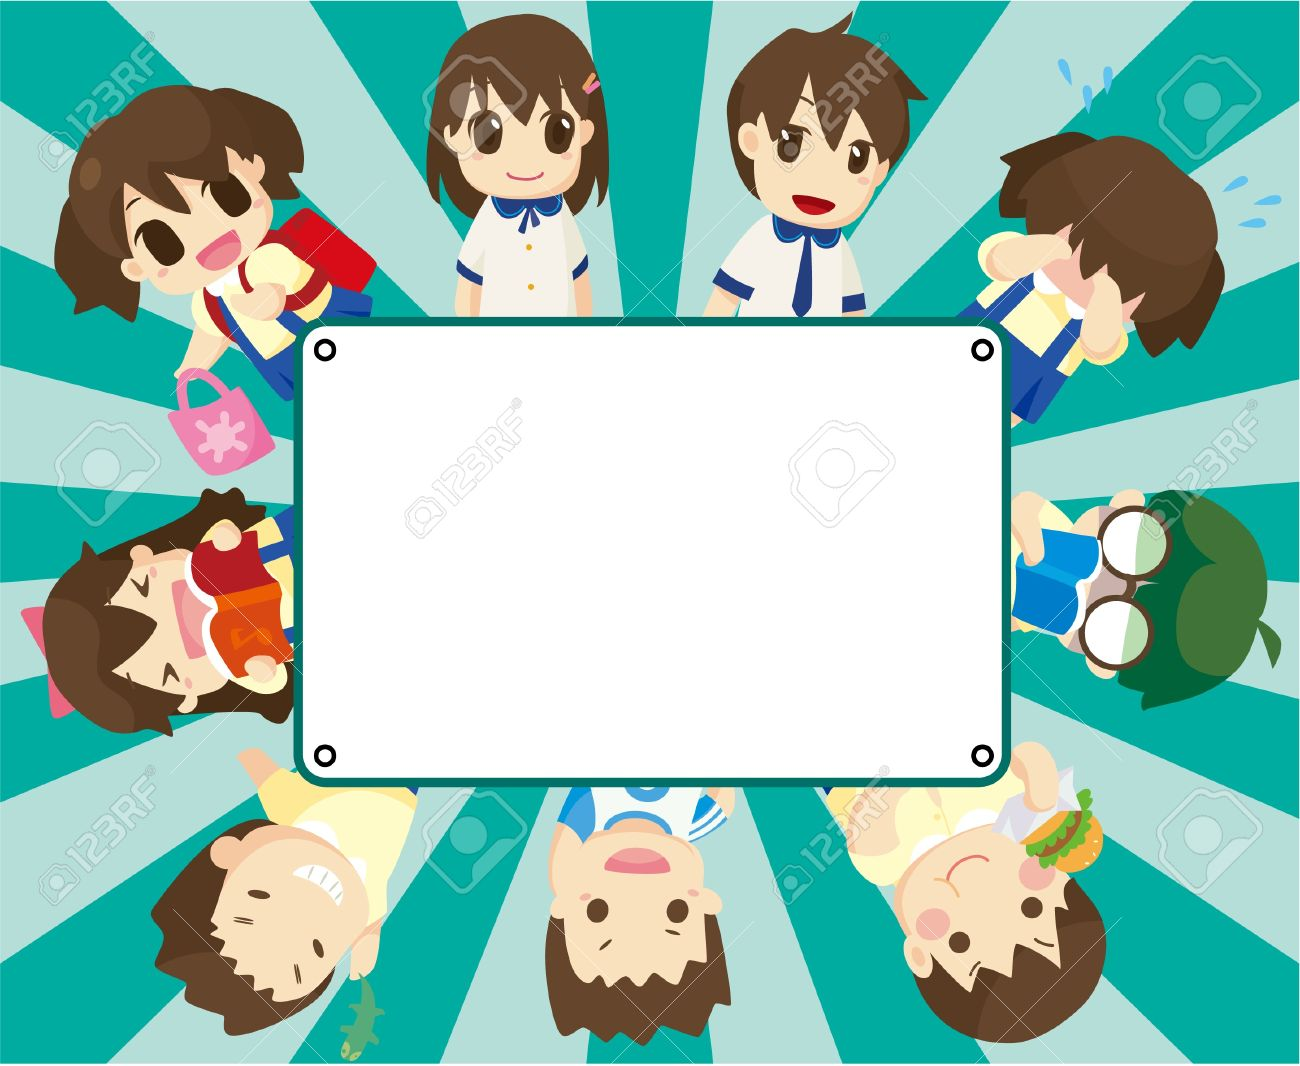 hight resolution of cartoon student card royalty free cliparts vectors and stock jpg 1300x1066 clipart teacher pupil design cartoon